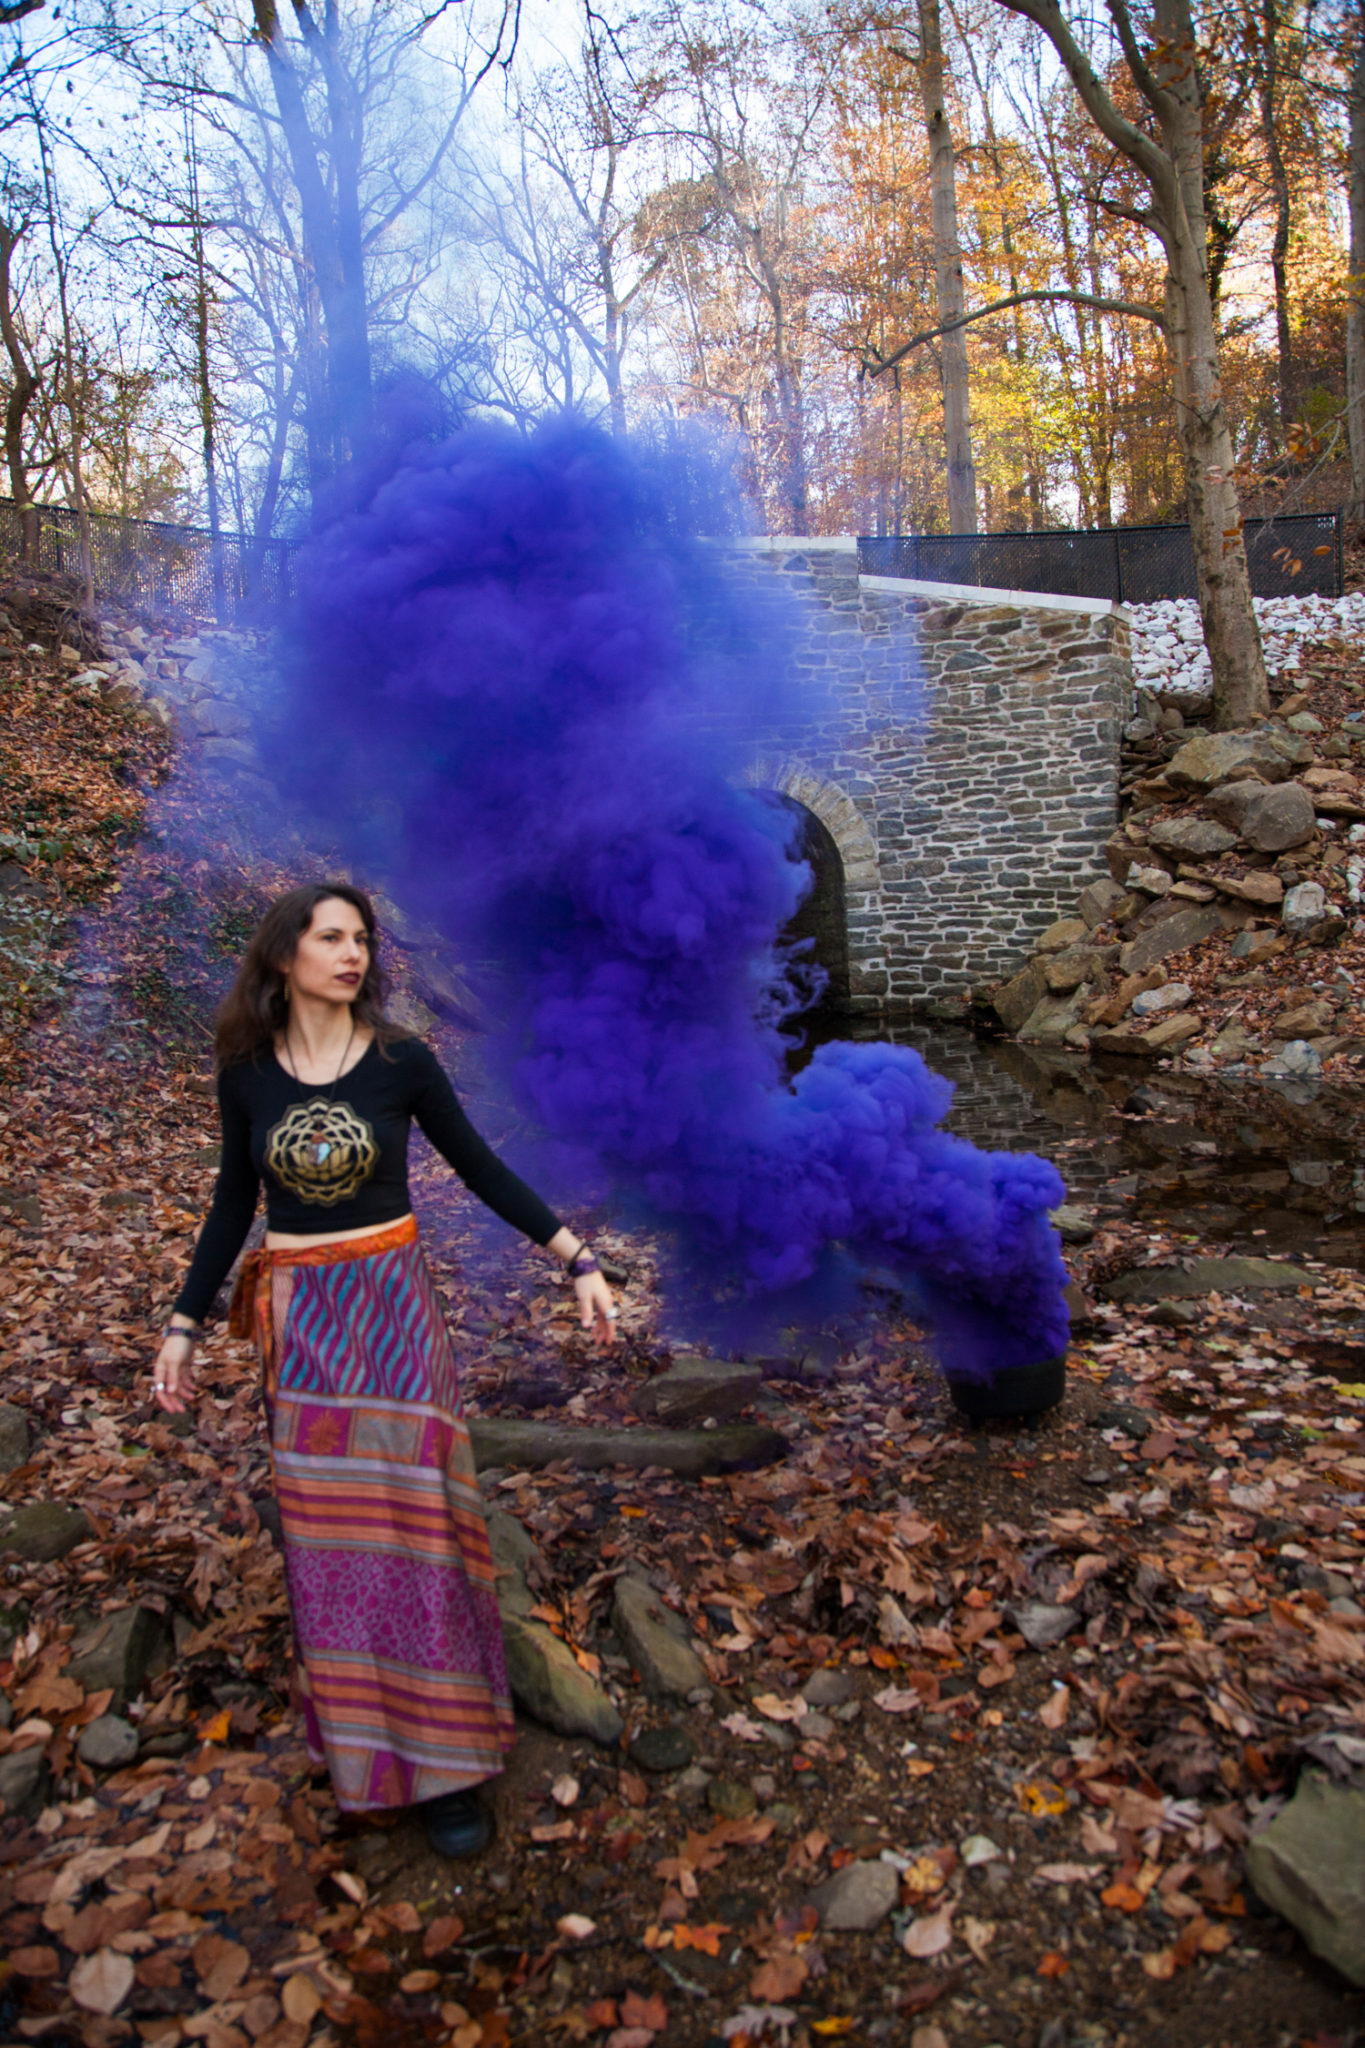 Witchy, smoke bomb portrait